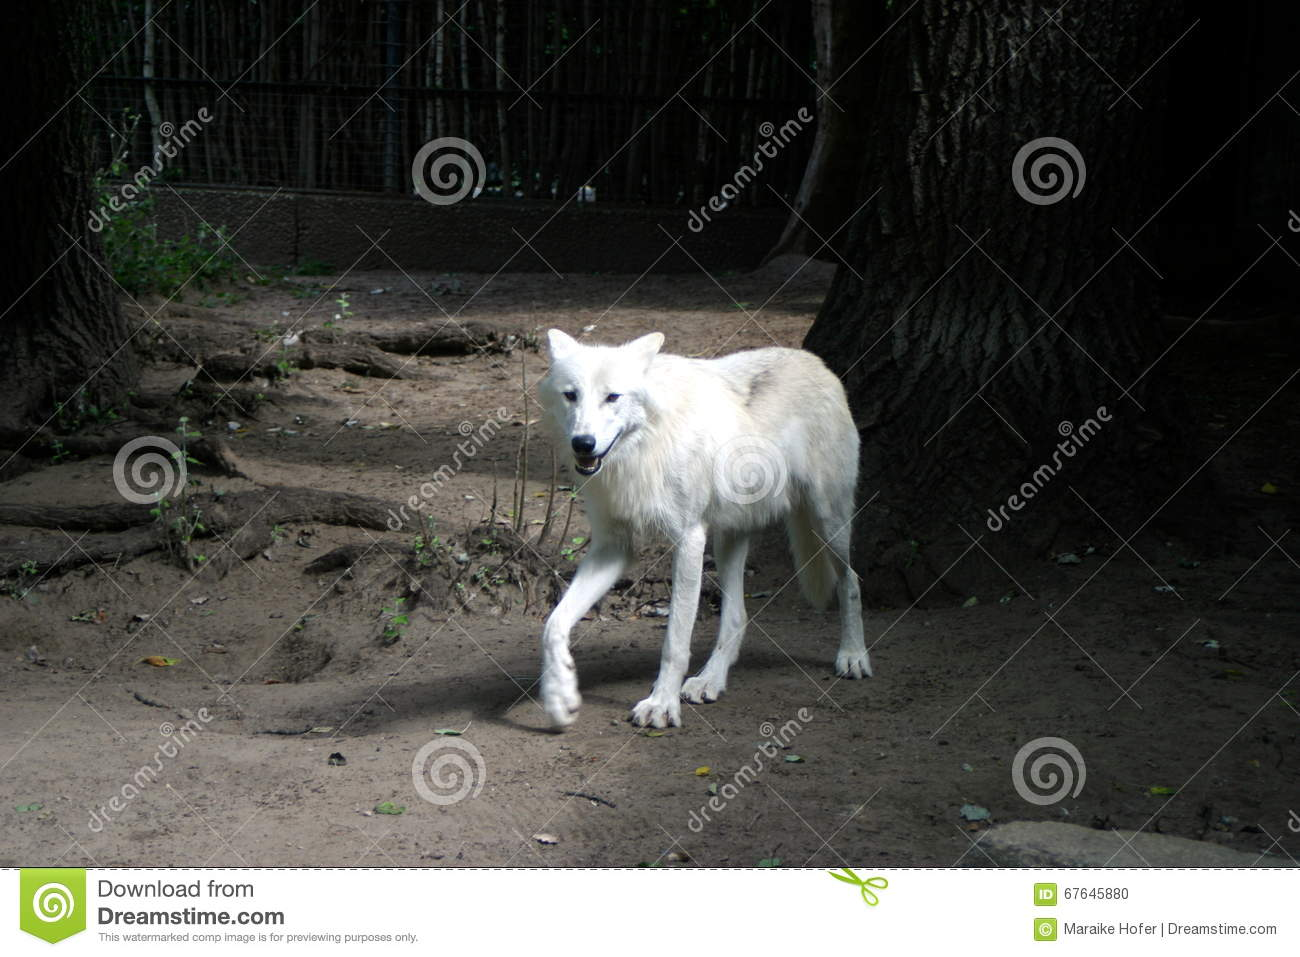 Wolf at a Zoo walking alone